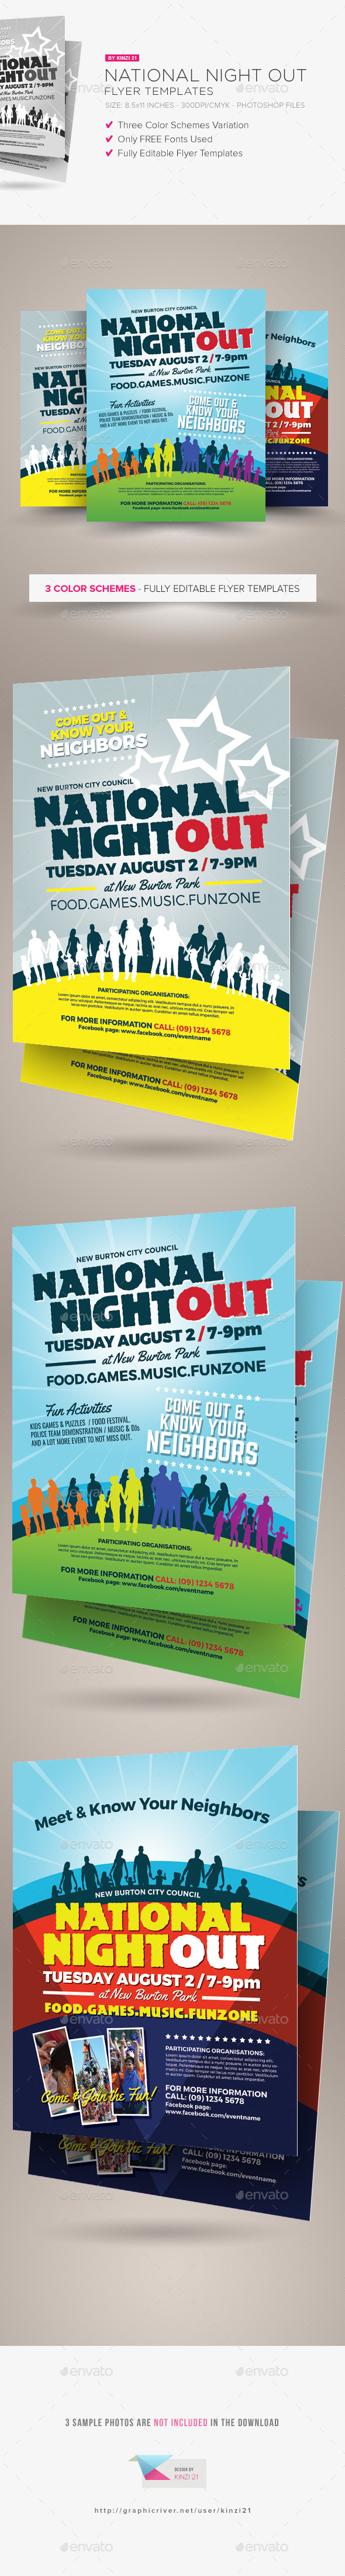 National Night Out Flyer Templates By Kinzi21 Graphicriver